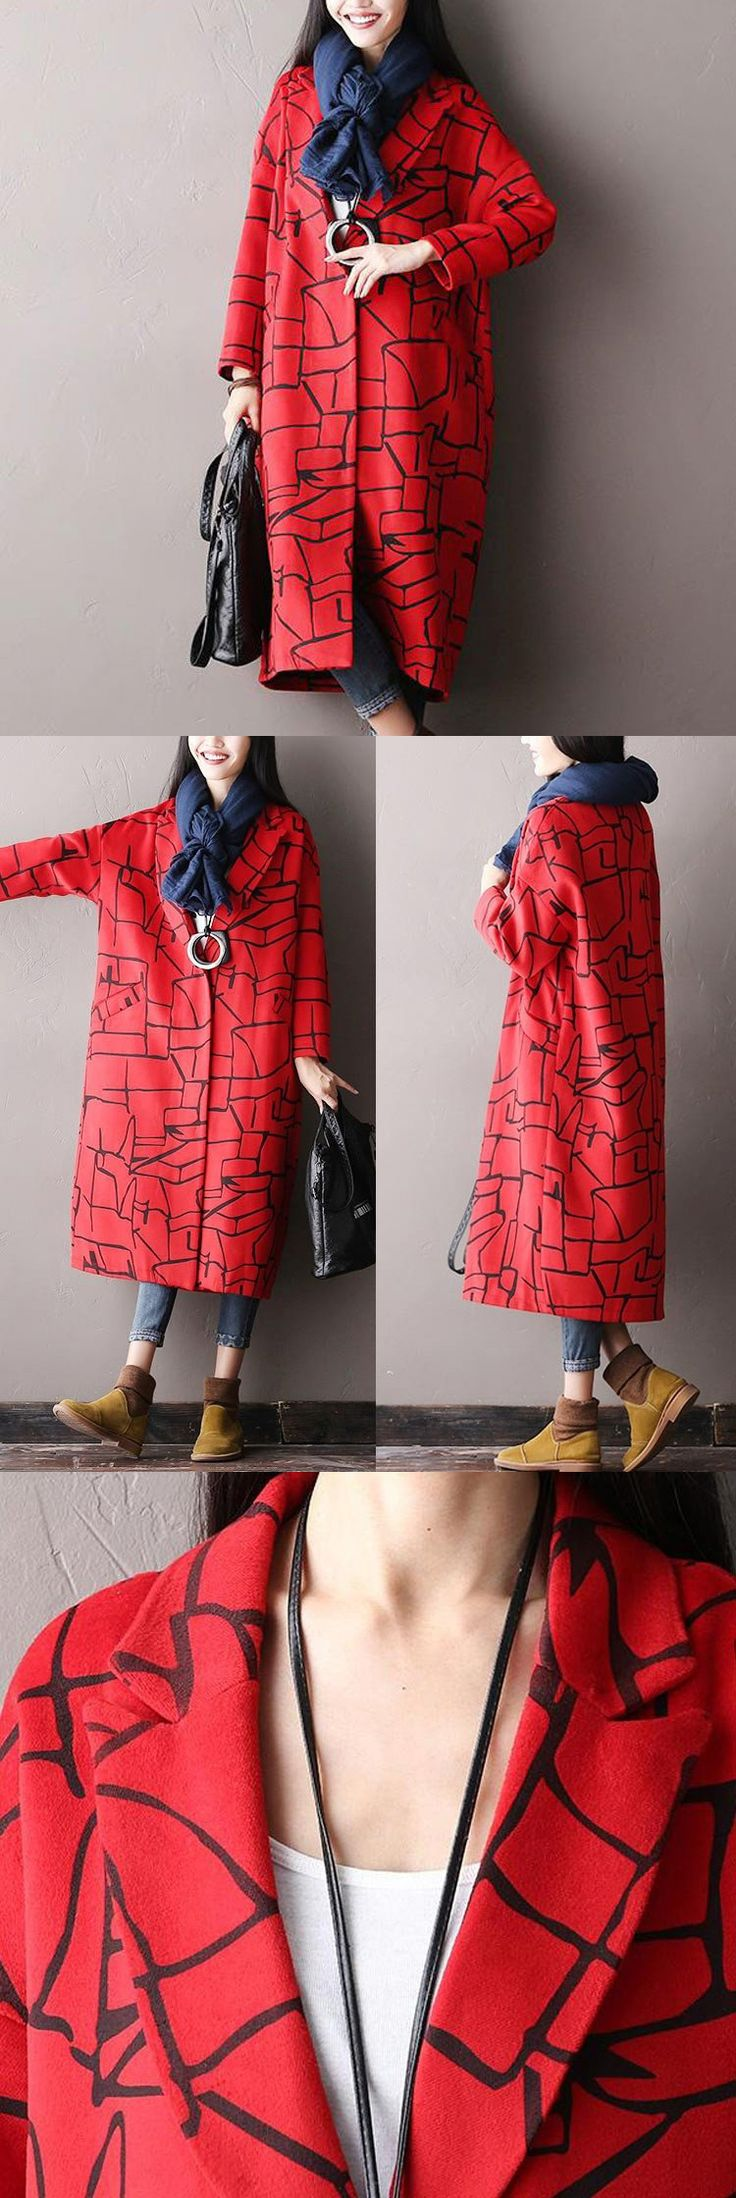 Red Long Sleeve Abstract  pattern Jacket.It's made of wool materials